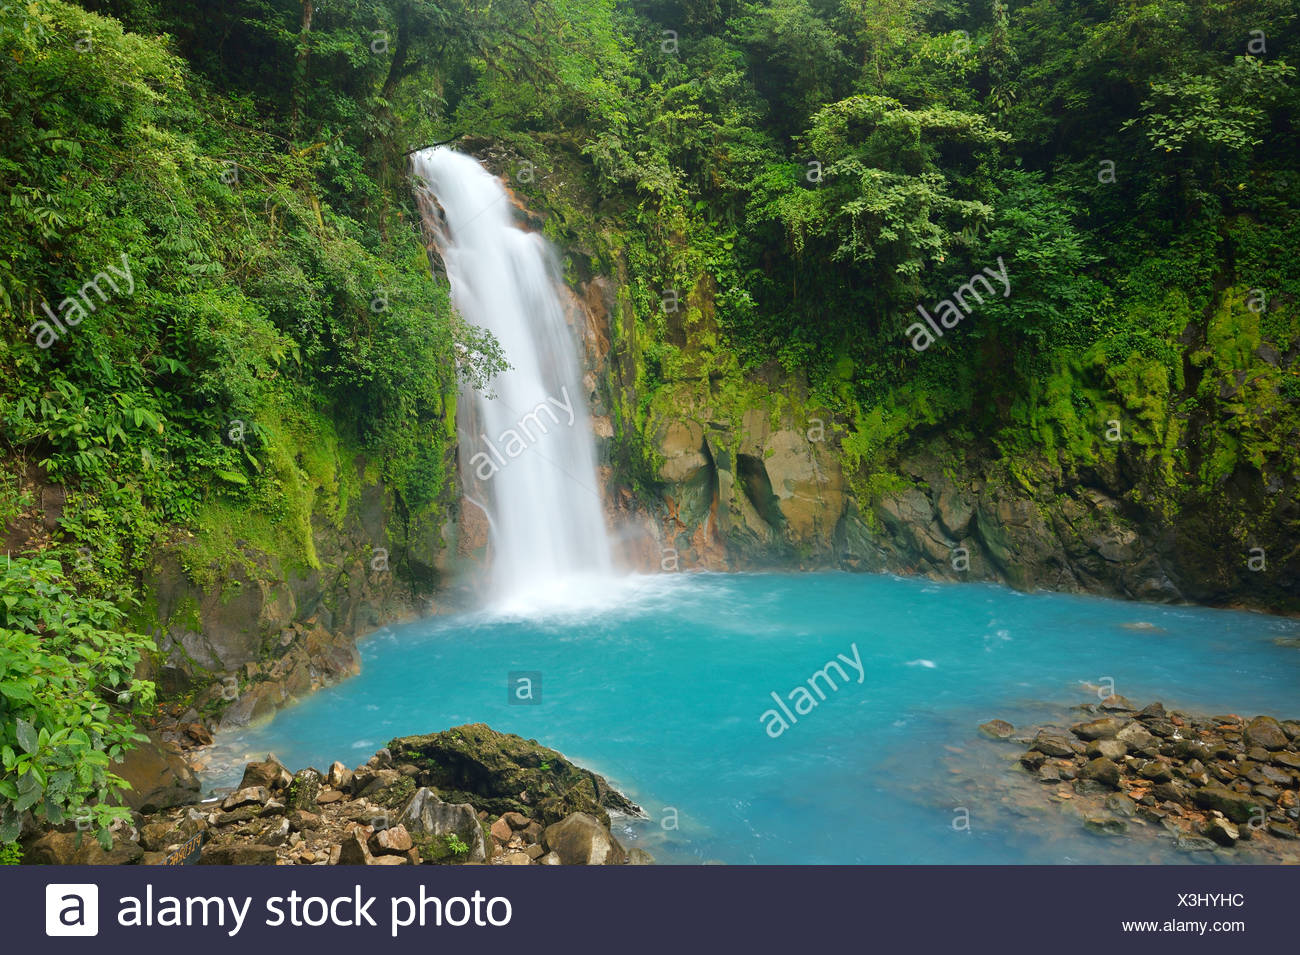 Waterfall at the light blue coloured river Rio Celeste, Tenorio Volcano National Park, Costa Rica, Central America - Stock Image